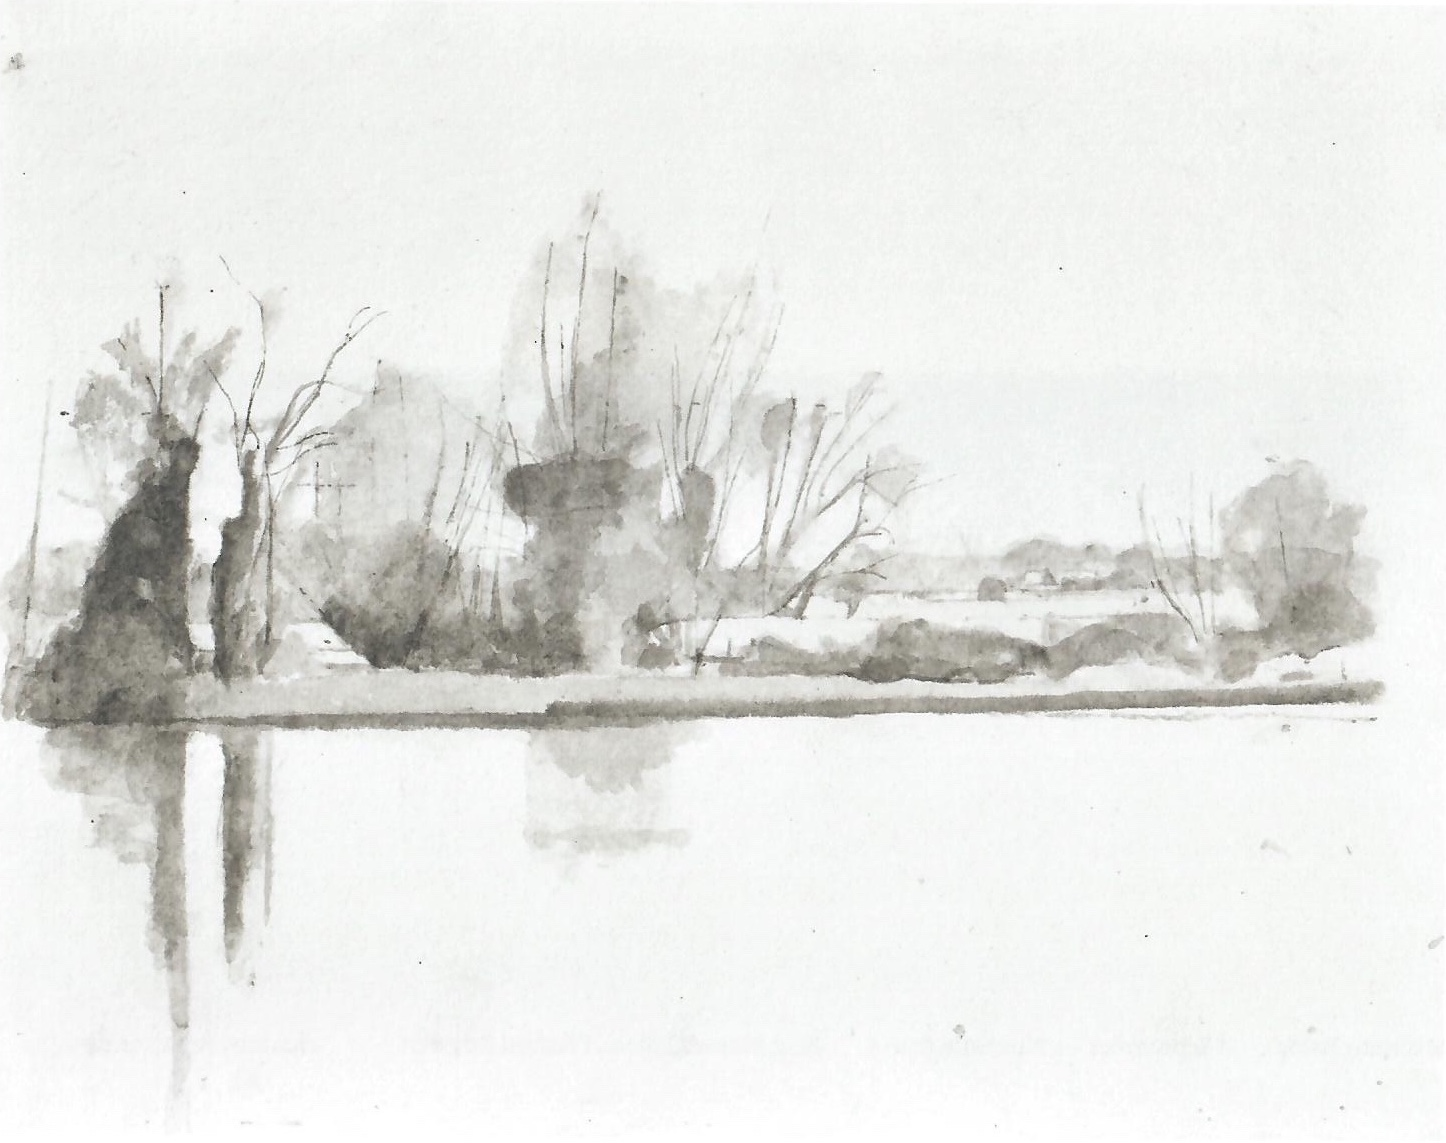 Midwinter Spring - The Boat House Gallery, Flatford, 2015Essay by Charlotte VerityExhibition catalogueclick above for essay text